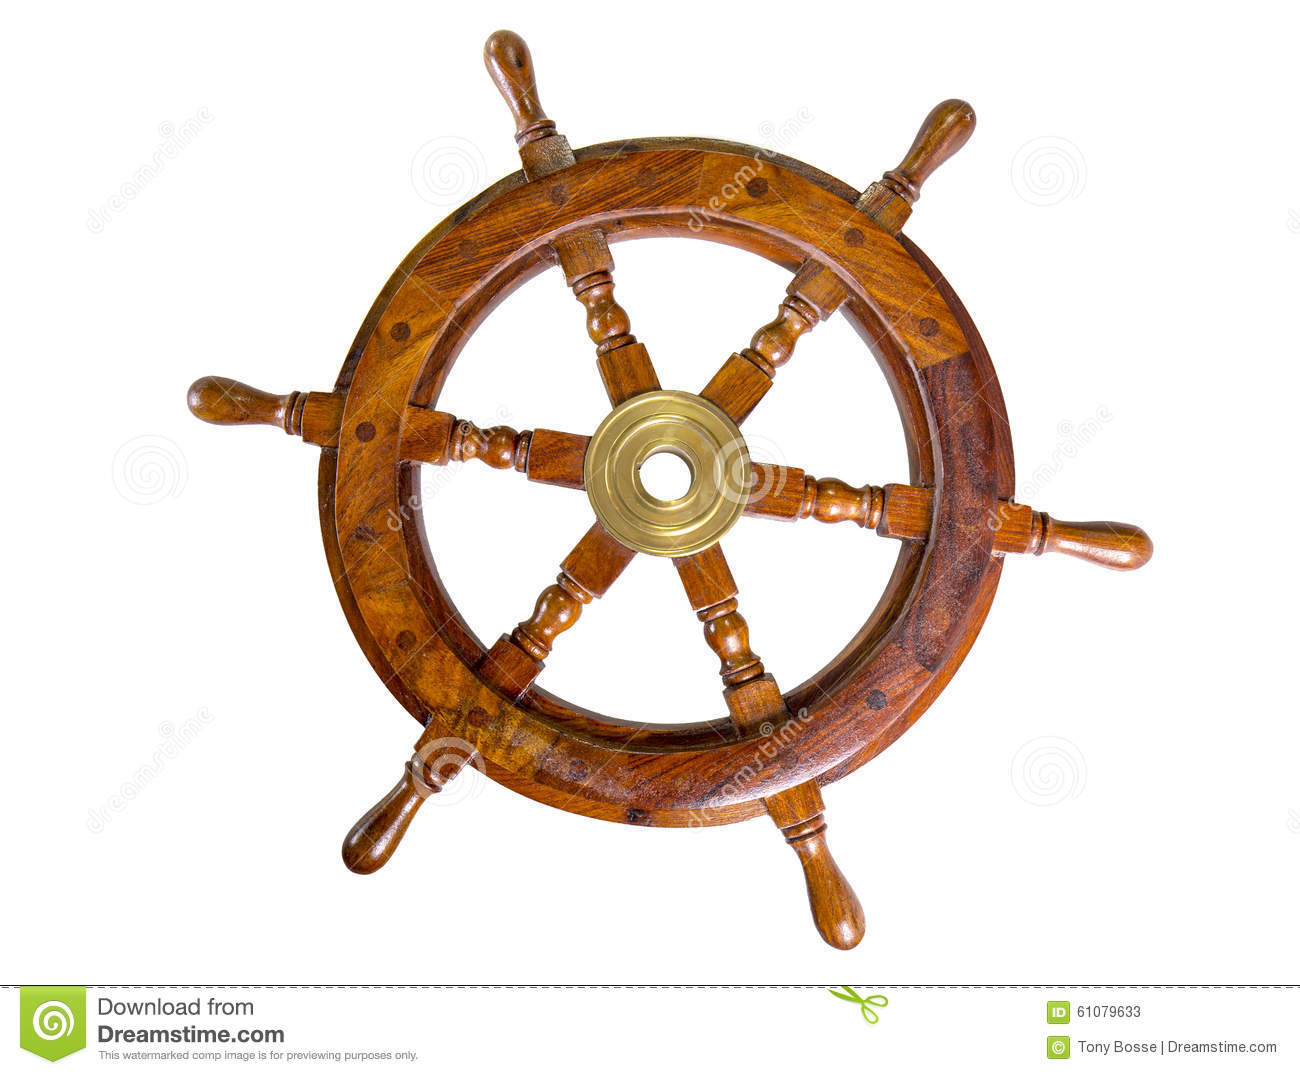 Boat Wheel stock image. Image of leisure, handle, boat - 61079633